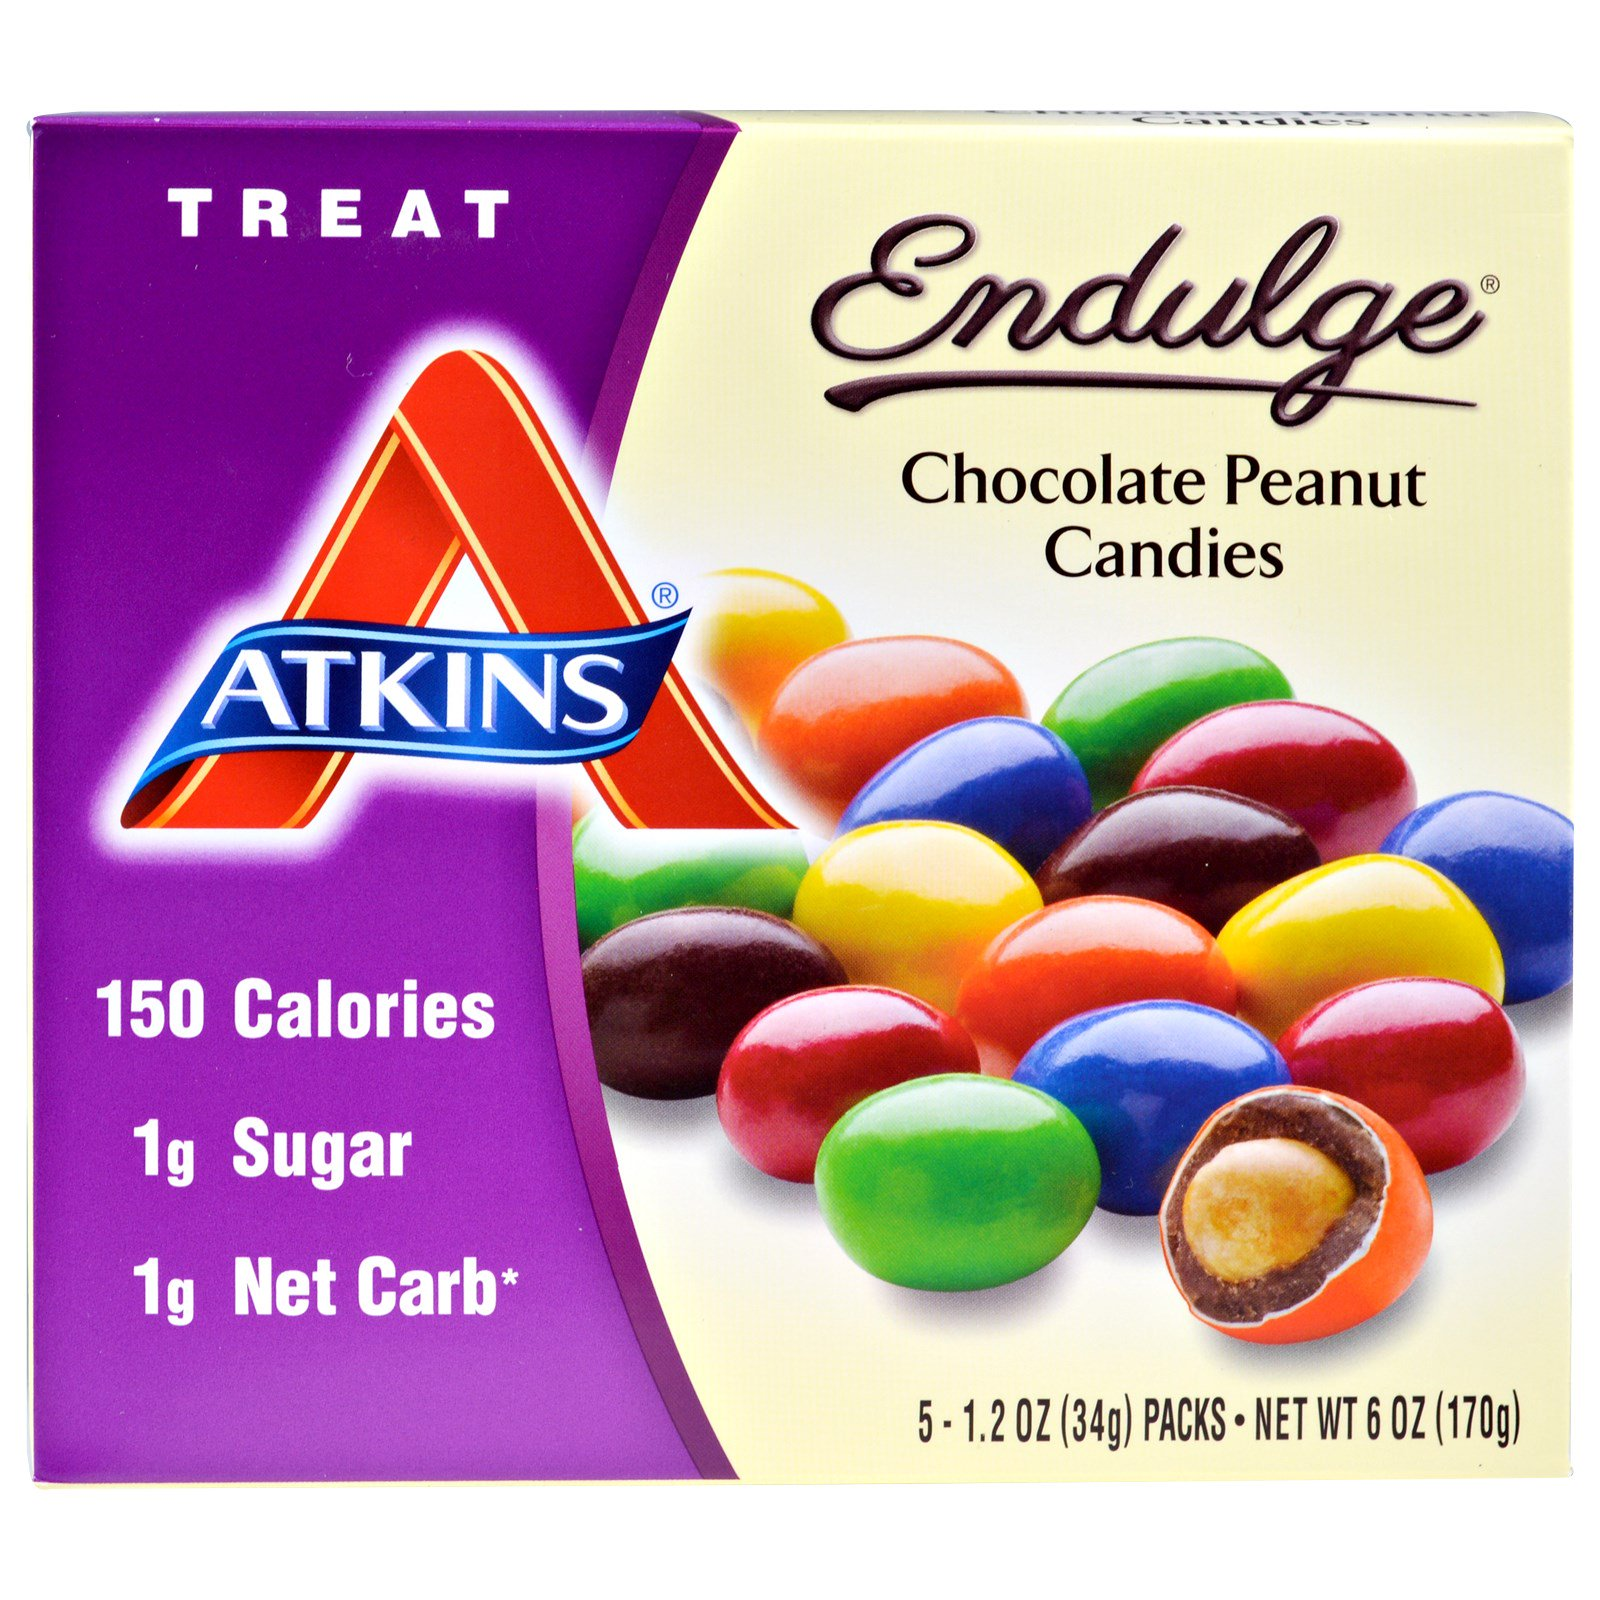 Atkins, Treat Endulge, шоколадные арахисовые конфеты, 5 пакетов, 34 г (1,2 унции) каждый